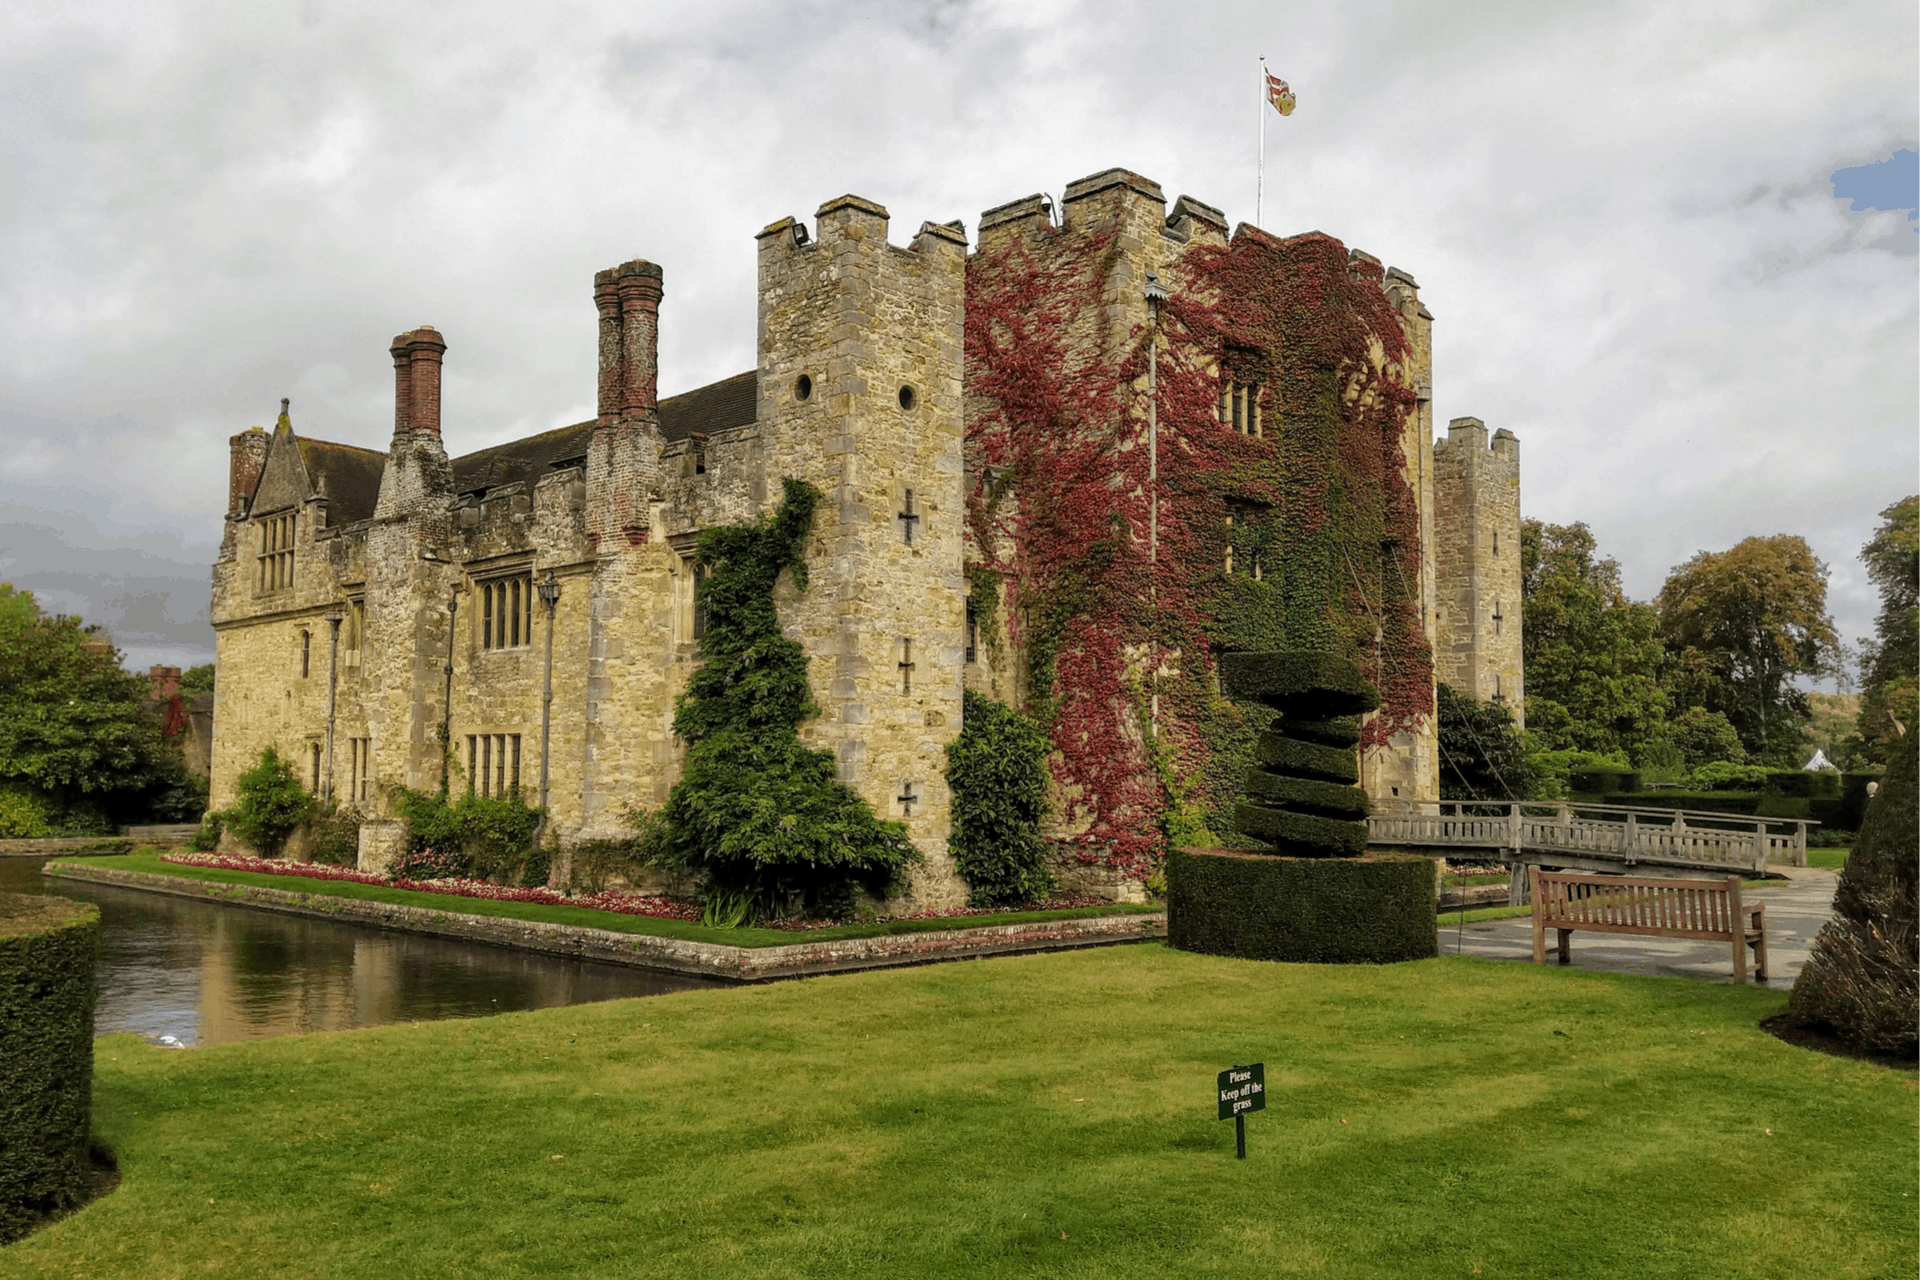 The house entrance and moat at Hever Castle